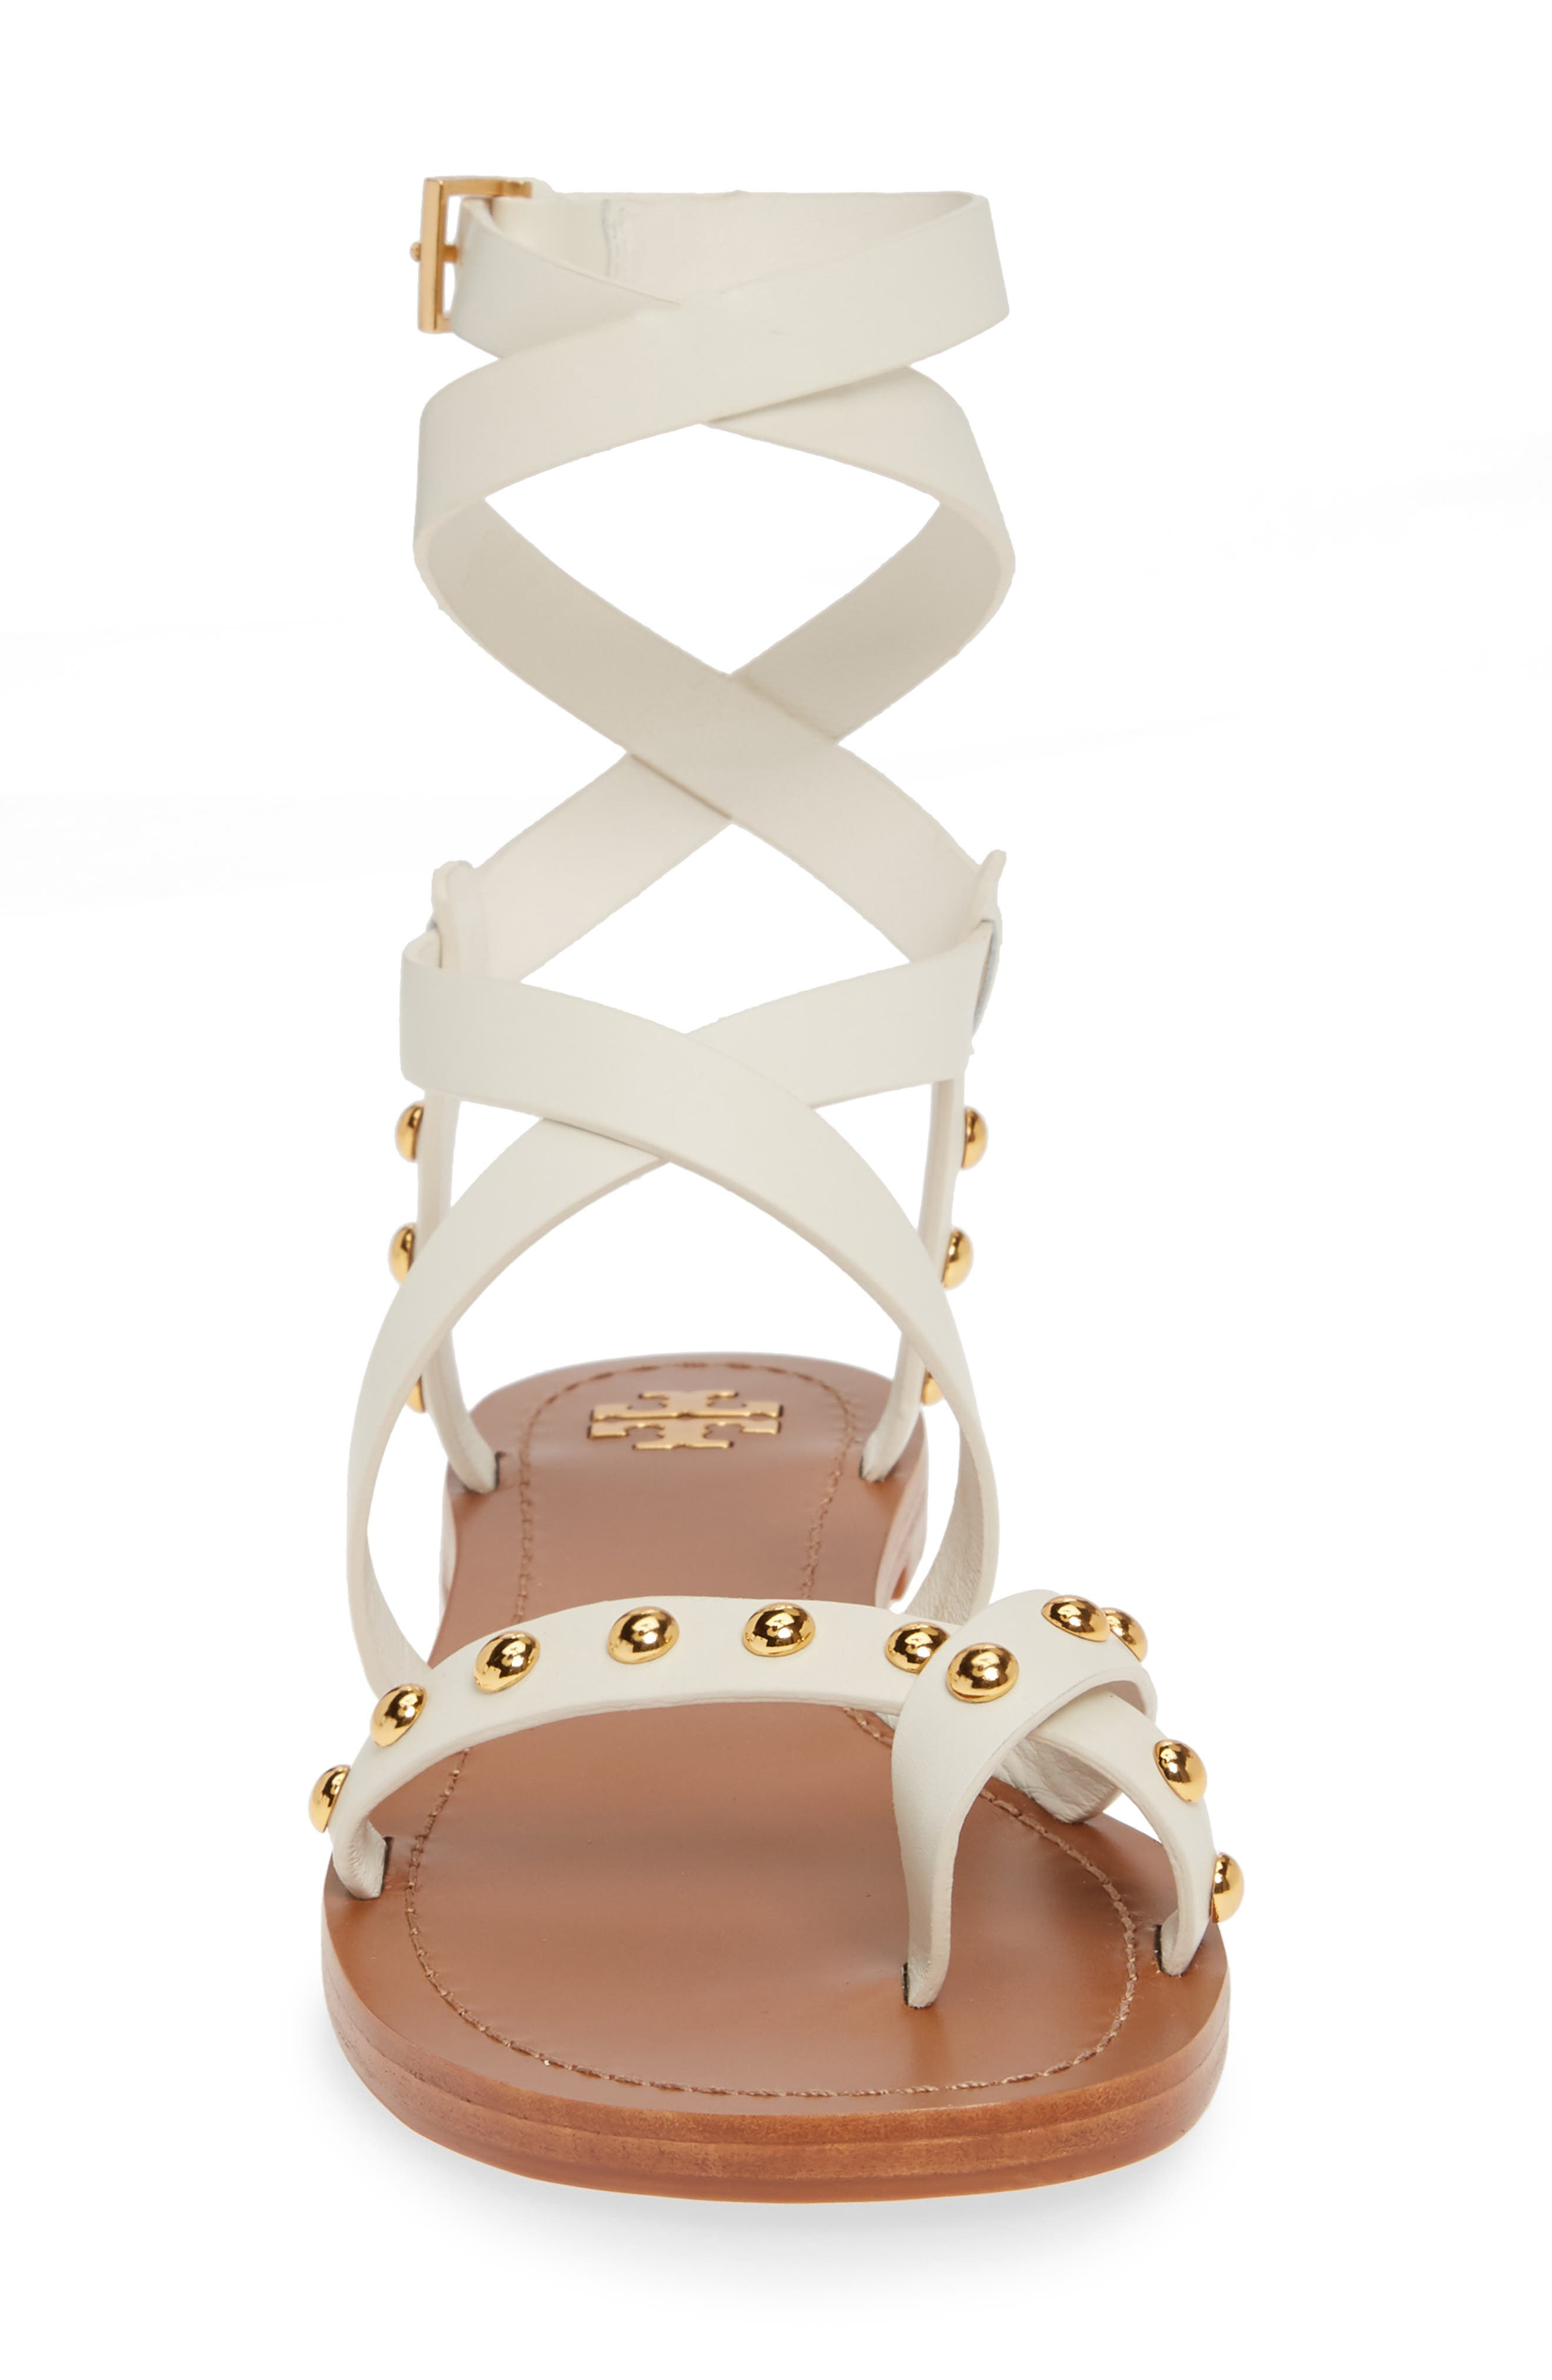 TORY BURCH, Ravello Studded Cage Sandal, Alternate thumbnail 4, color, PERFECT IVORY